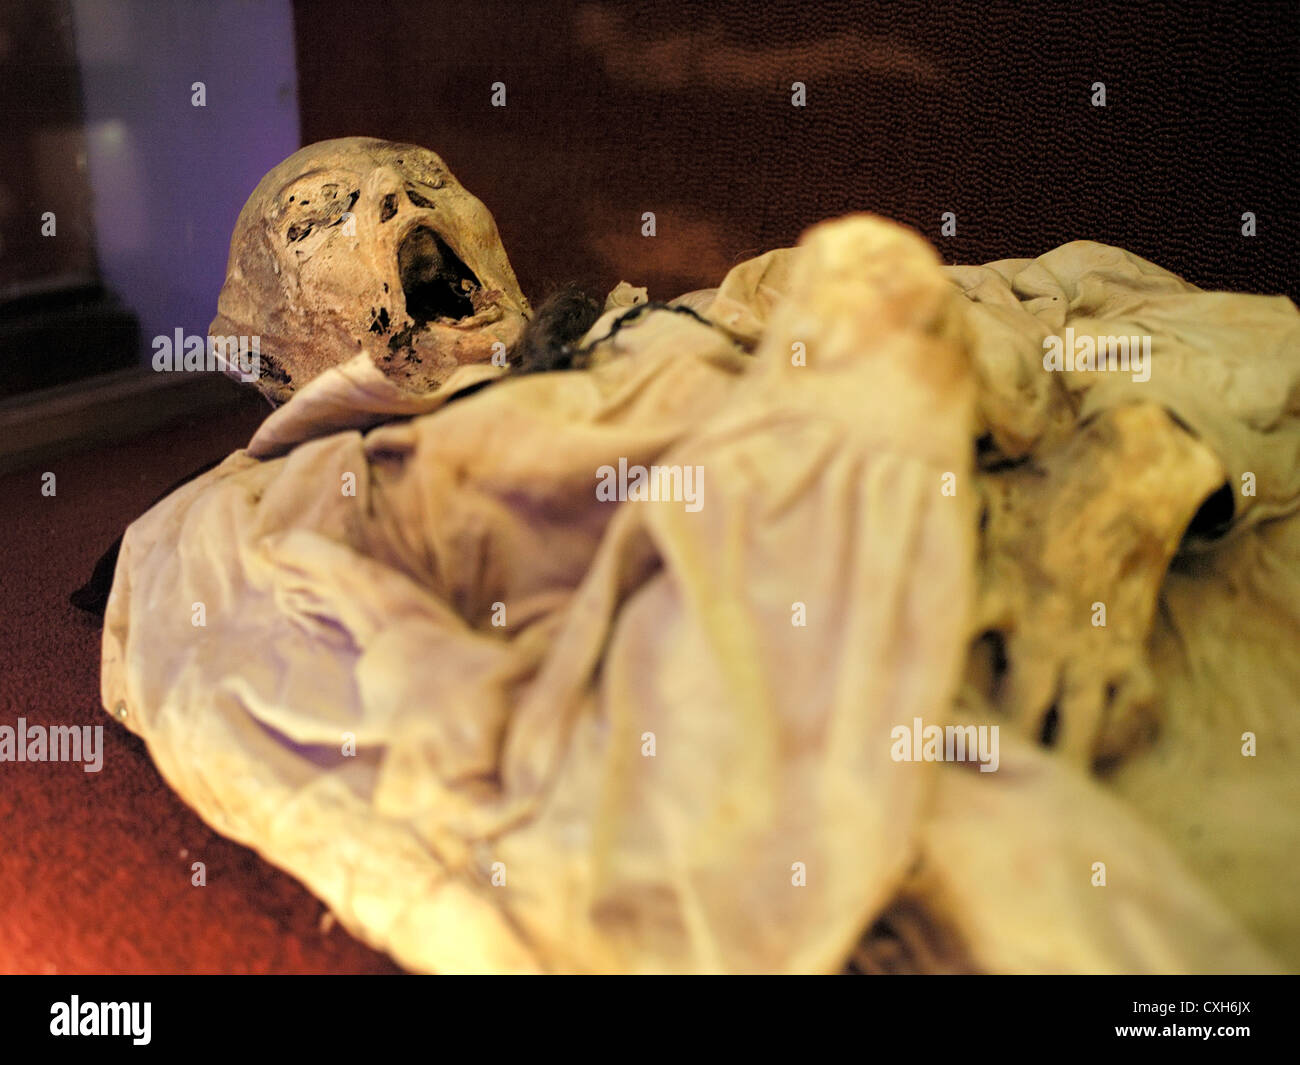 Museum of the Mummies, the most popular tourist attraction in Mexico - with over 100 mummies on display, helps to - Stock Image